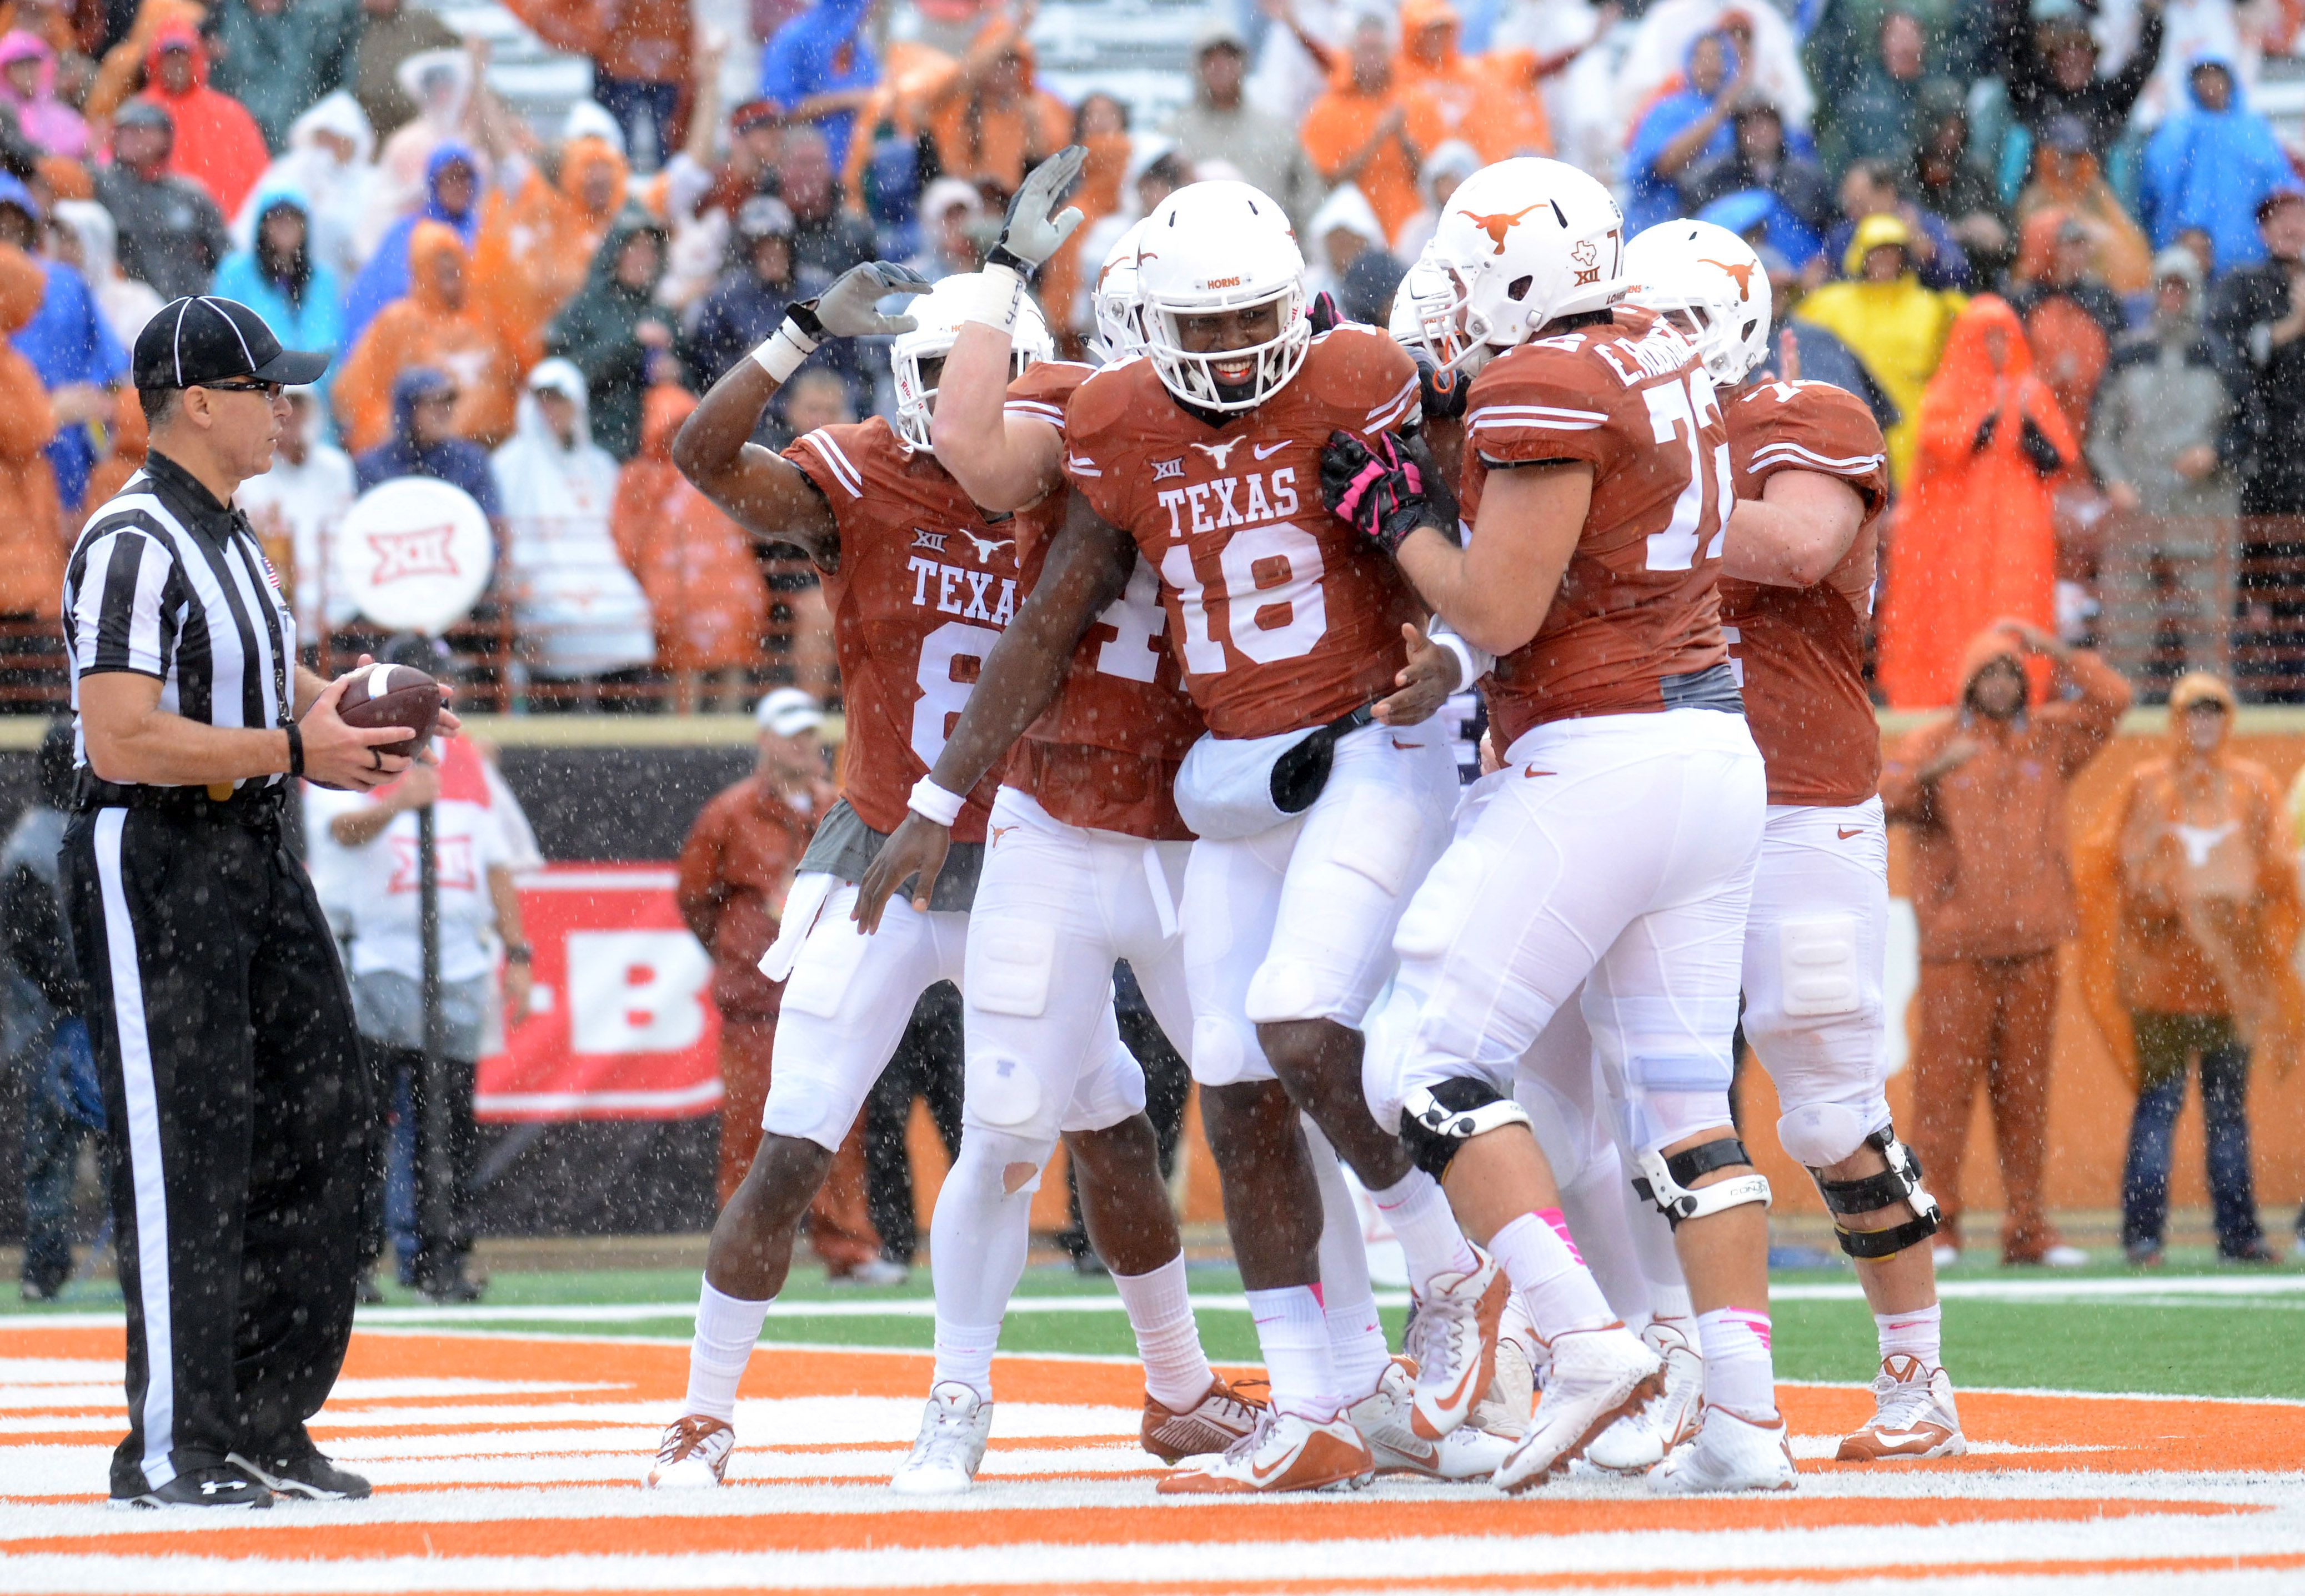 Notre Dame vs. Texas Prediction, Preview, Spread, Game Time, Channel